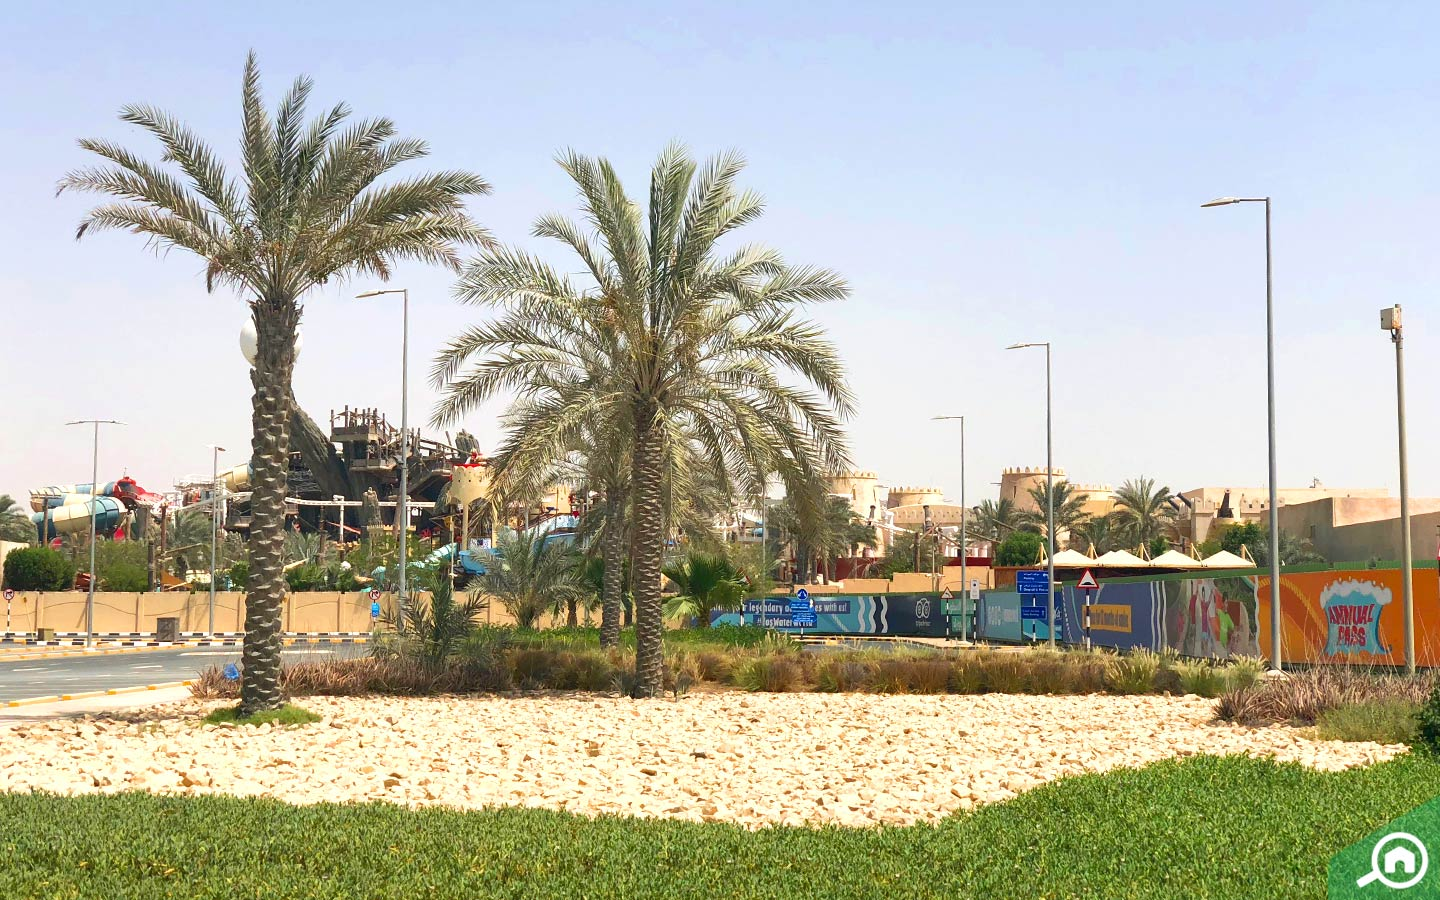 Parks and recreational facilities on Yas Island